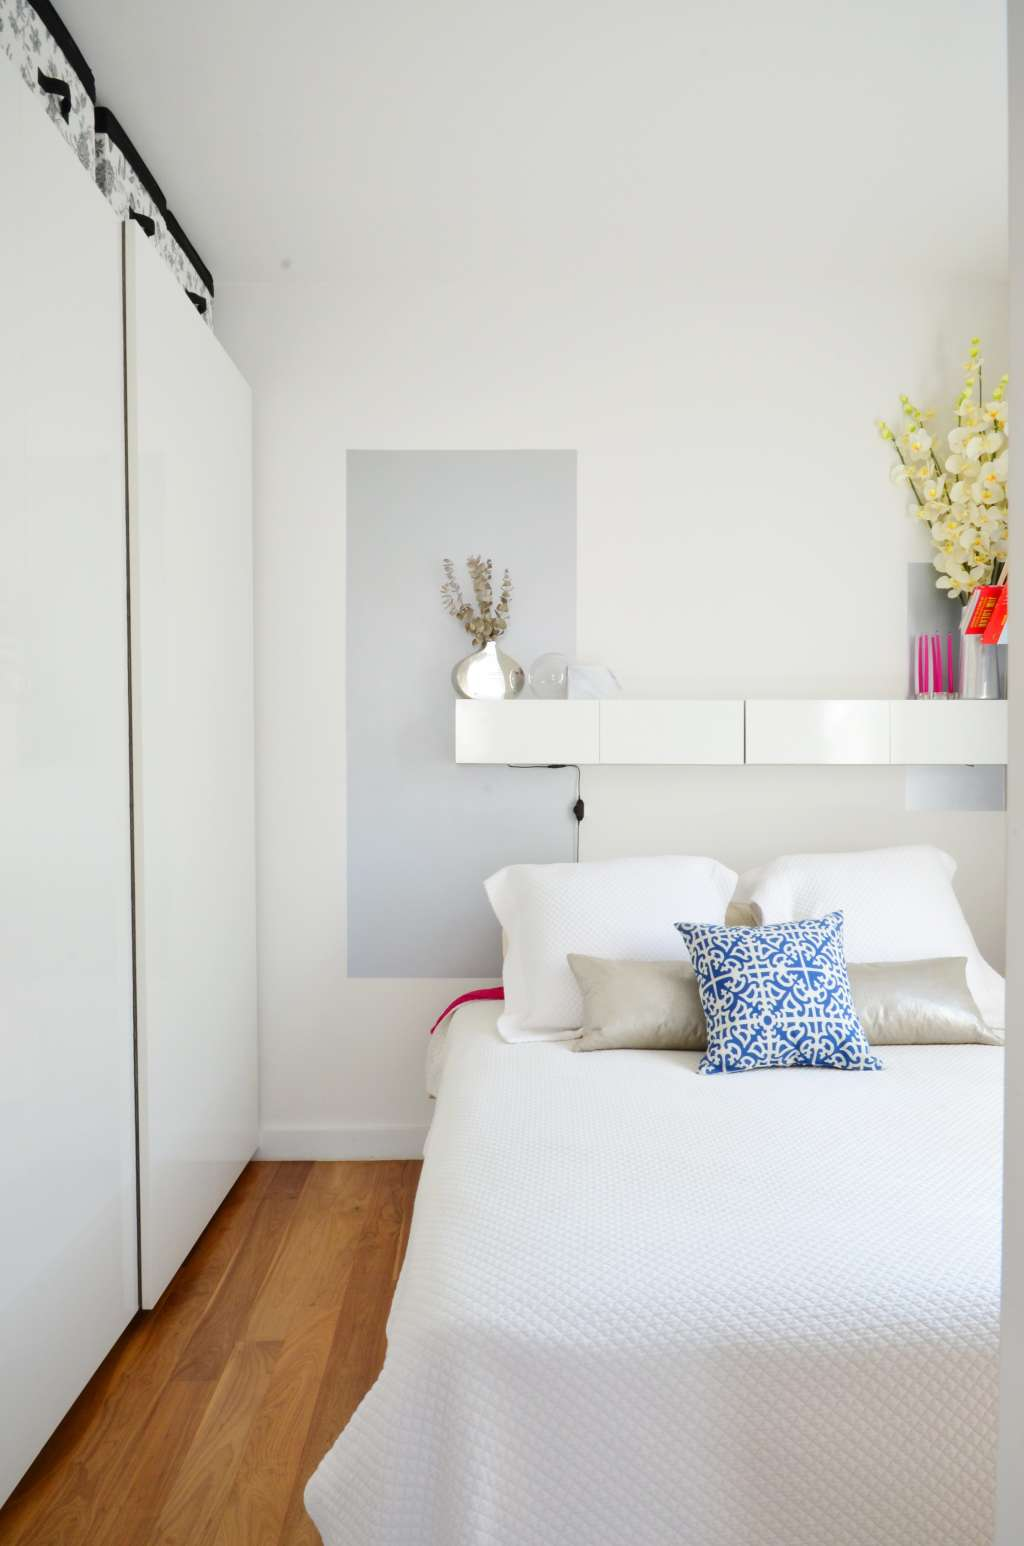 8 Pro Design Moves for a Bold Bedroom You Haven't Tried Yet